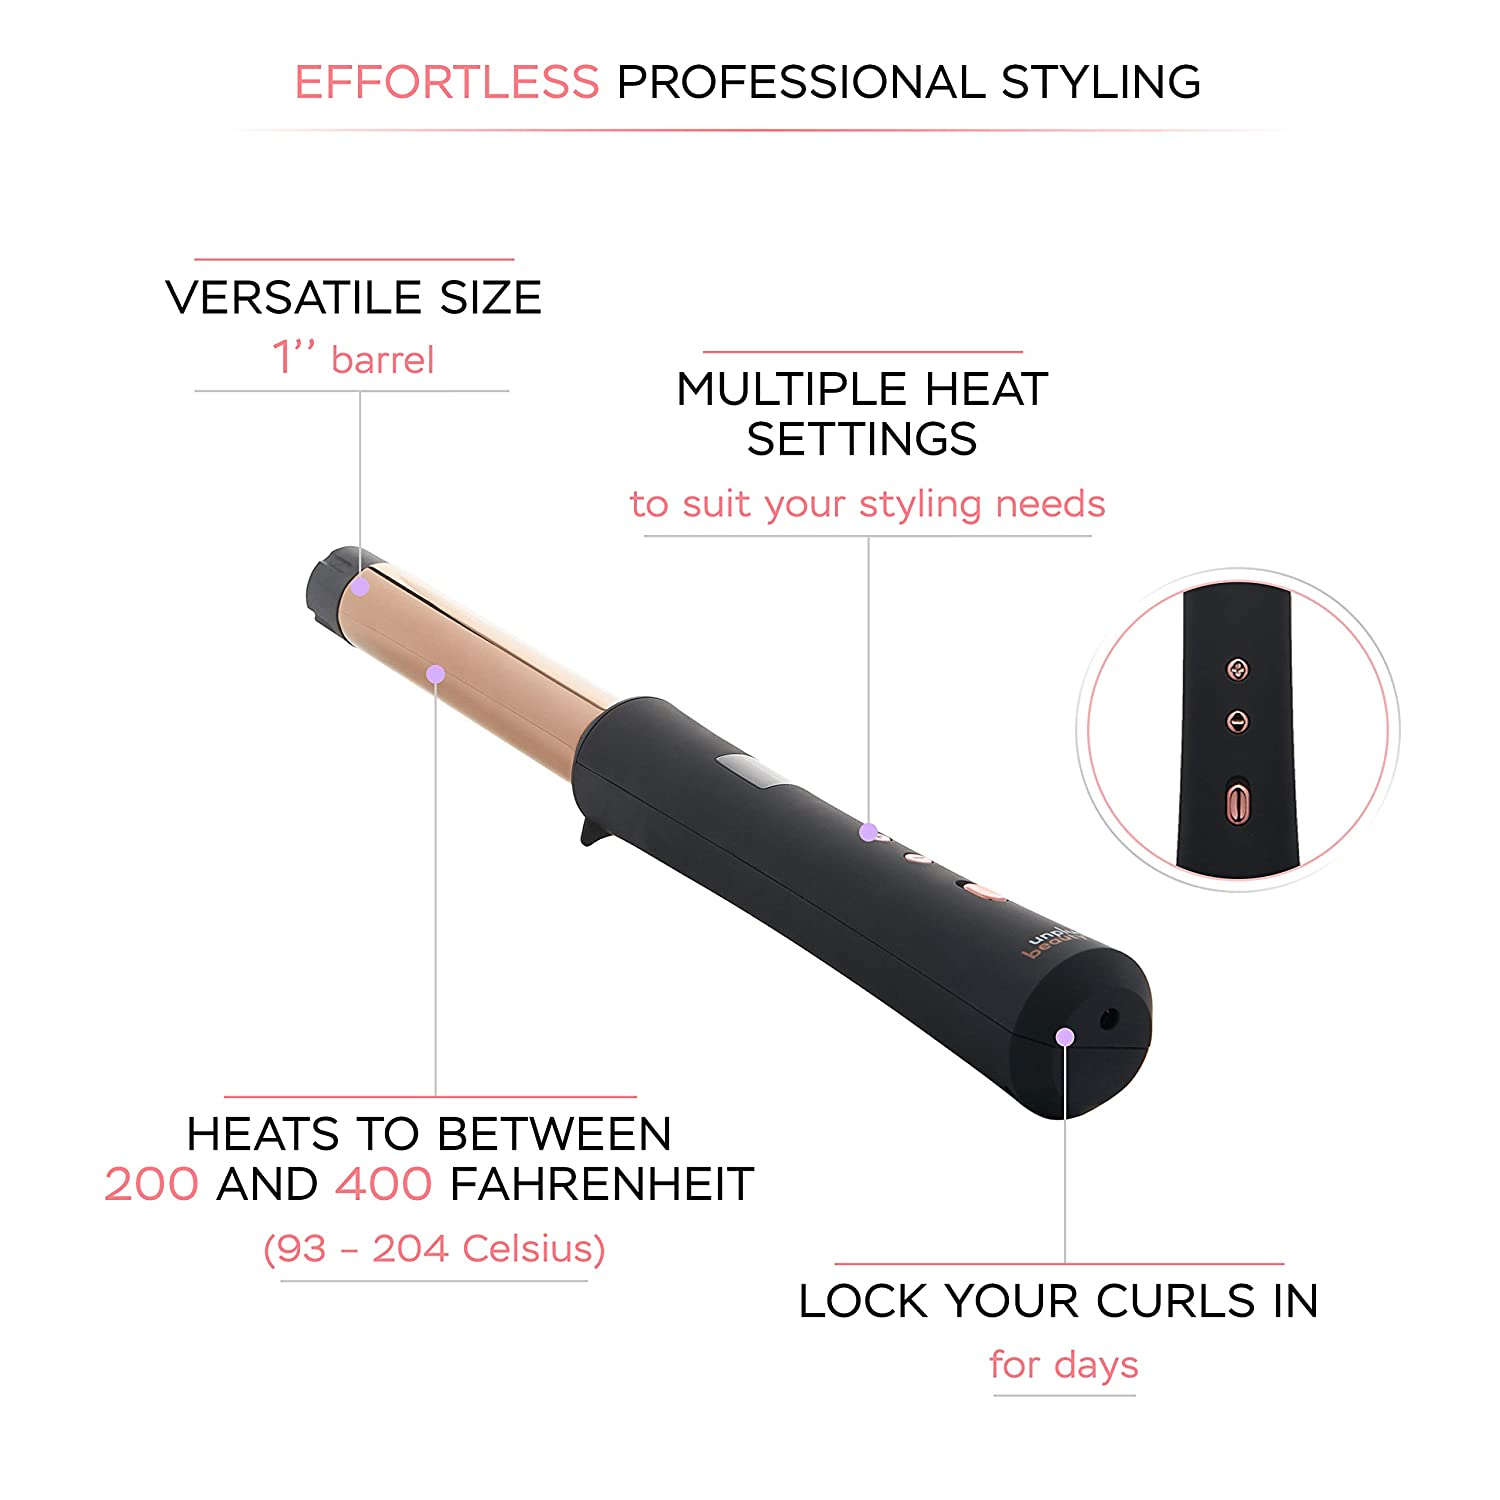 What is a cordless curling iron?